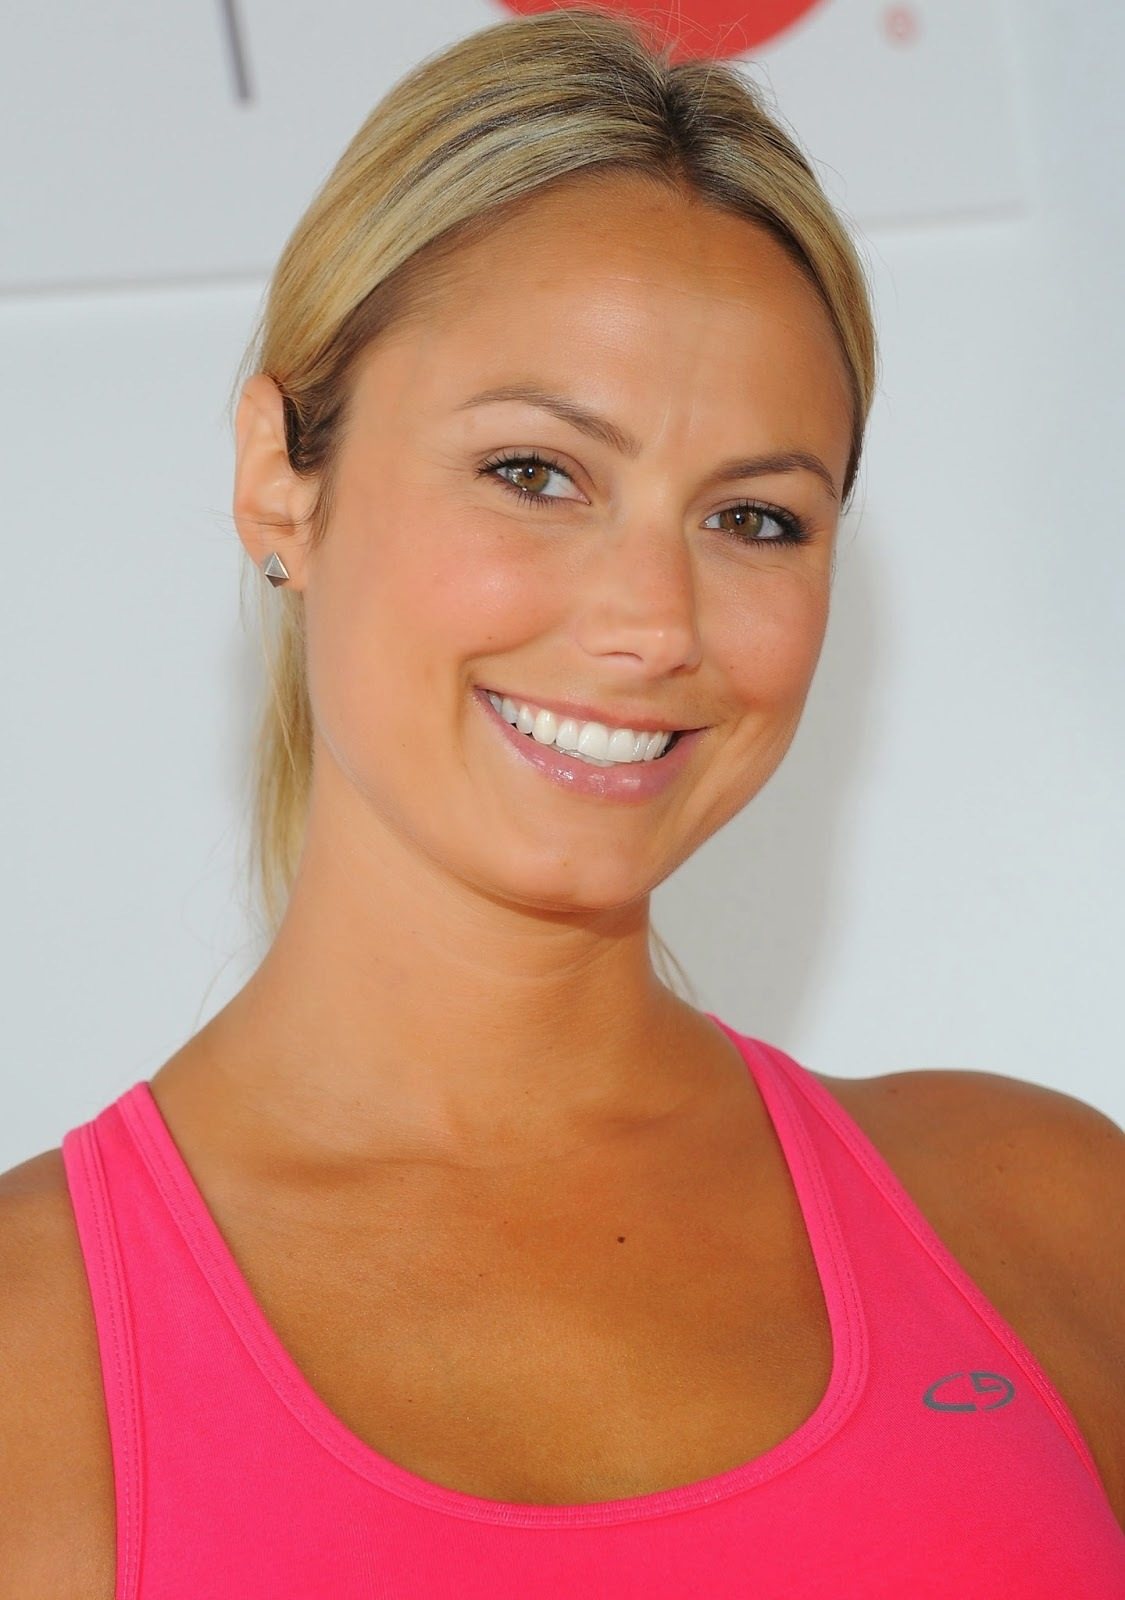 You Stacy keibler fhm consider, that